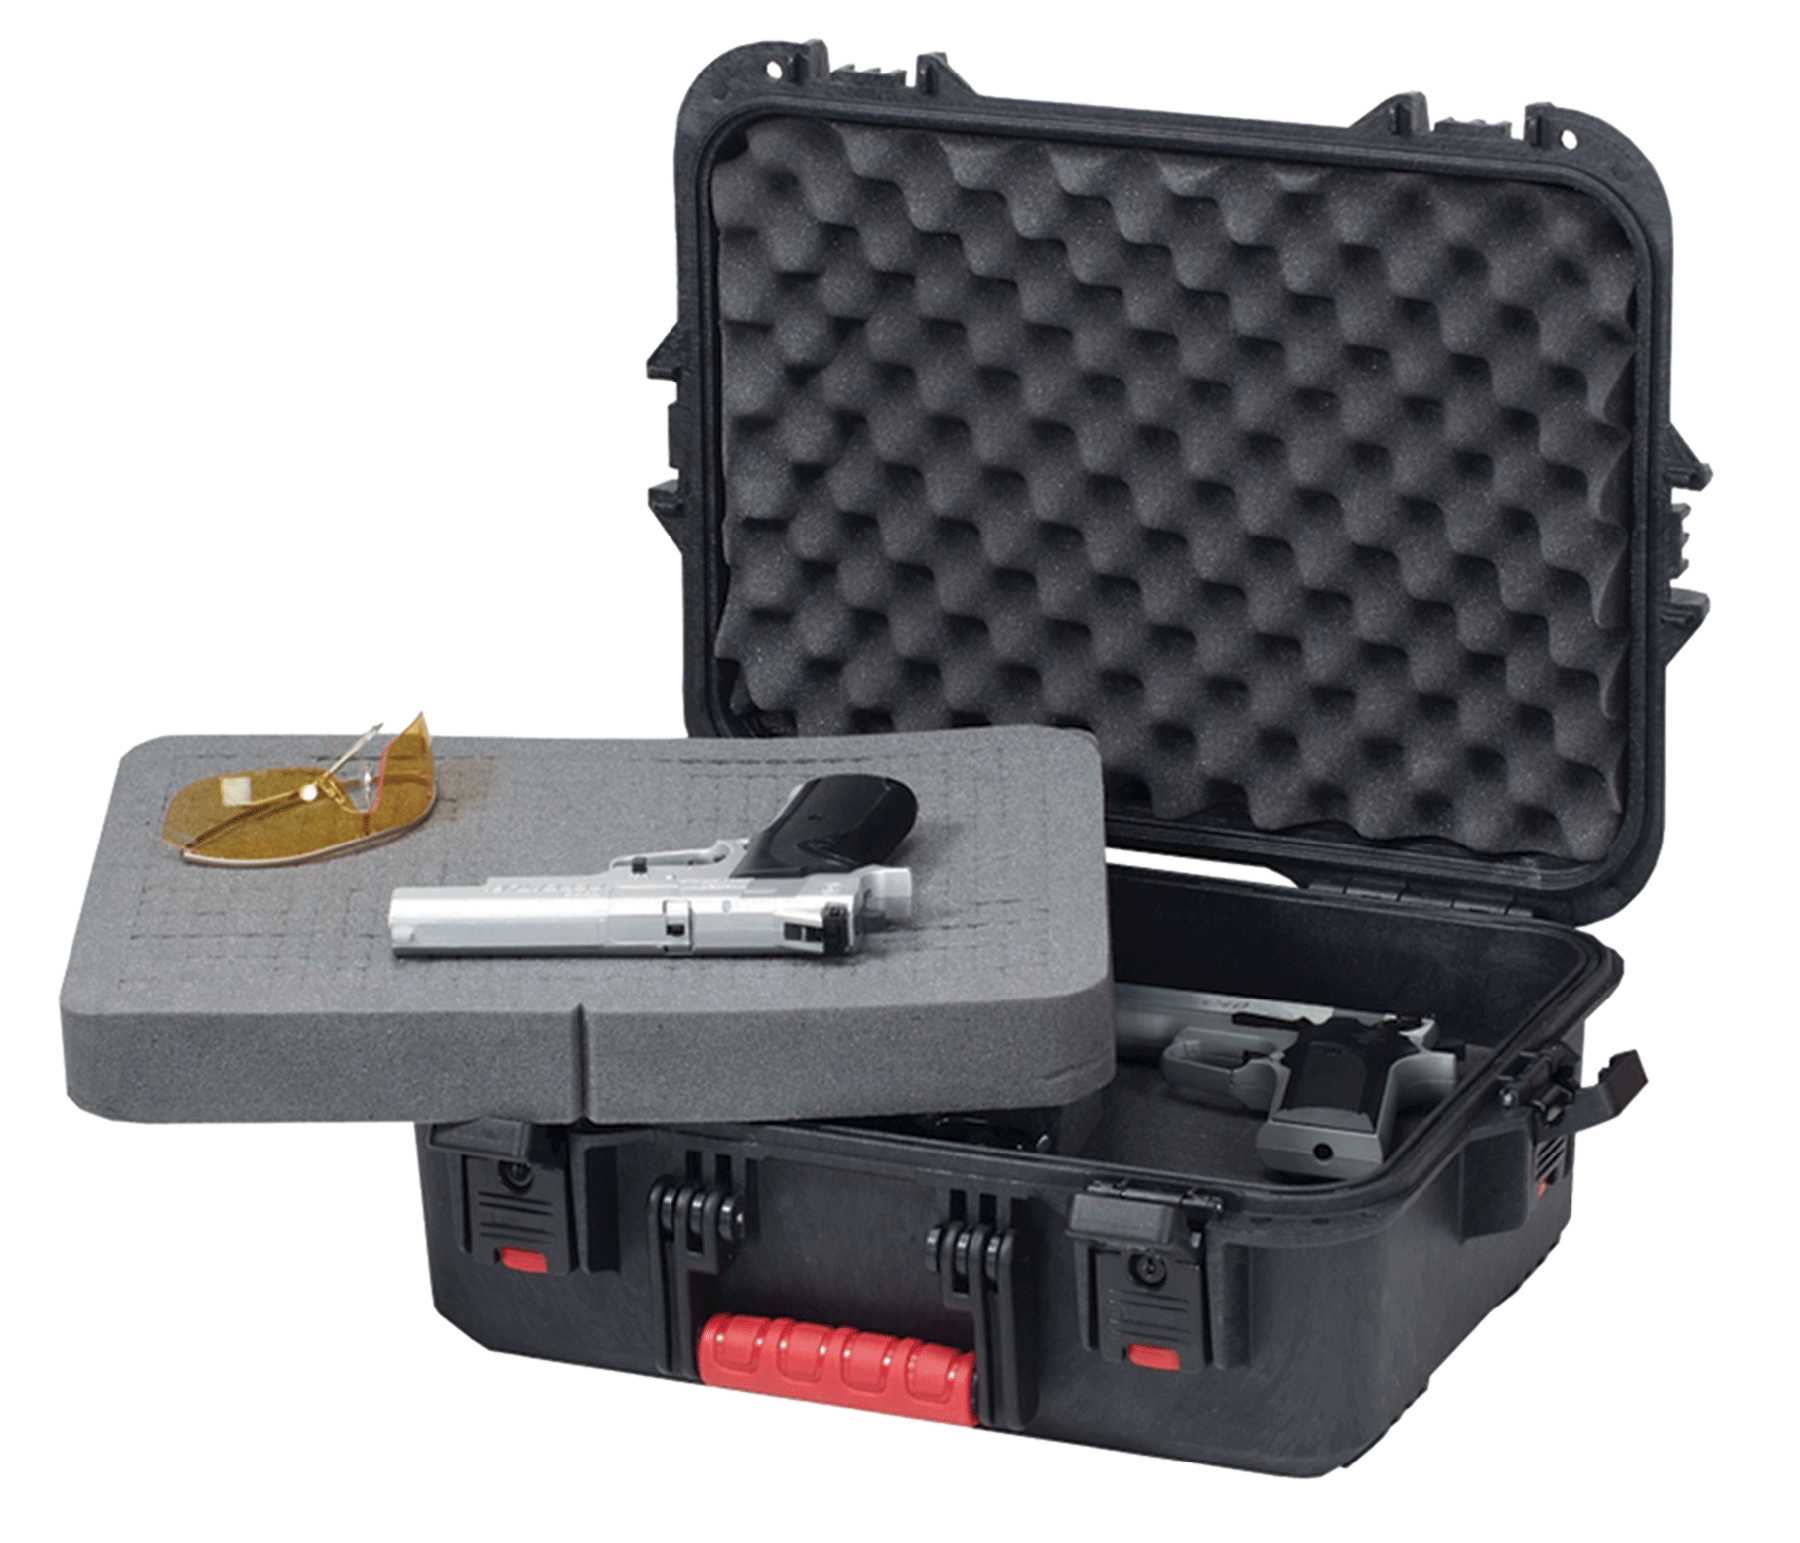 Plano 108021 All Weather Pistol/Accessory Hard Case Plastic Black w/Latches